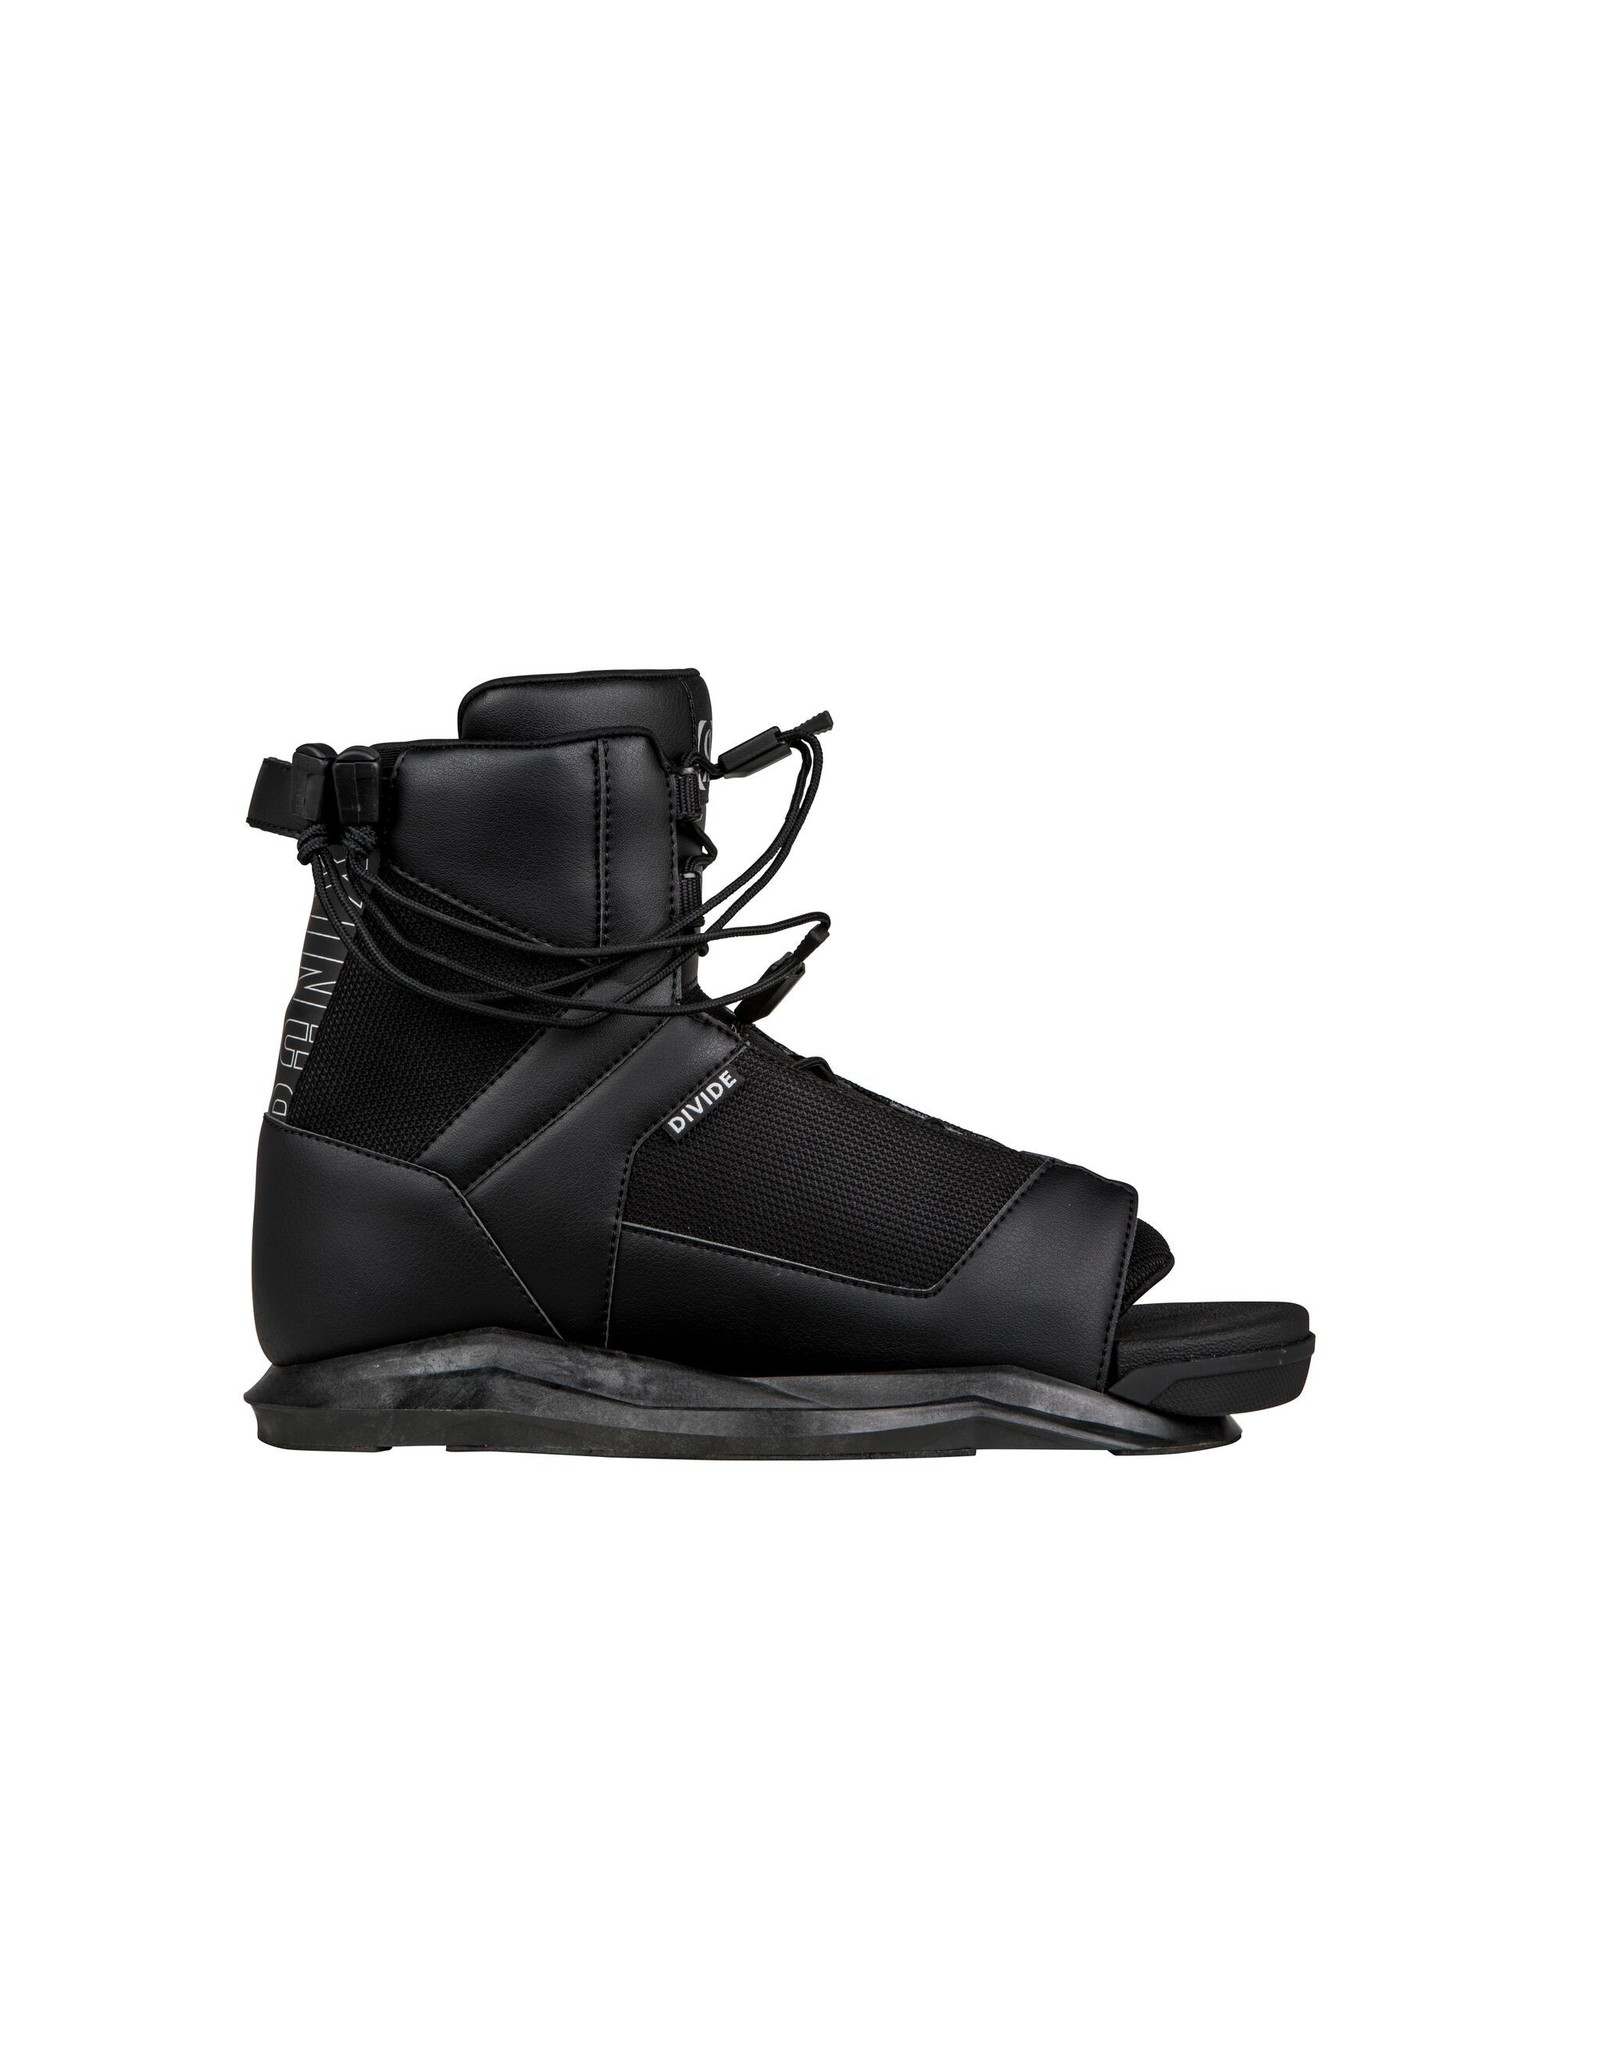 Ronix 2021 Divide Wakeboard Boot